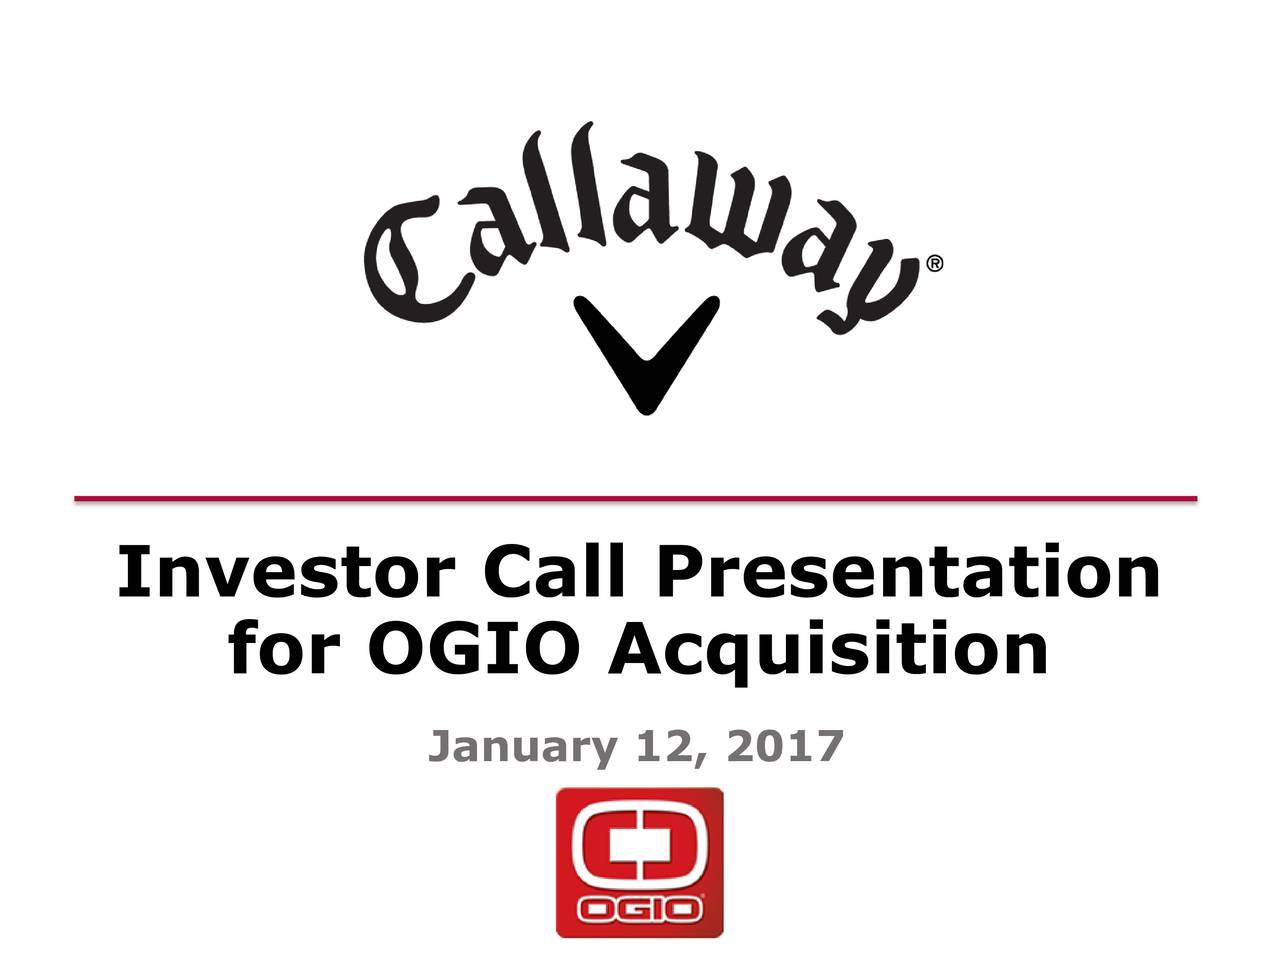 for OGIO Acquisition January 12, 2017